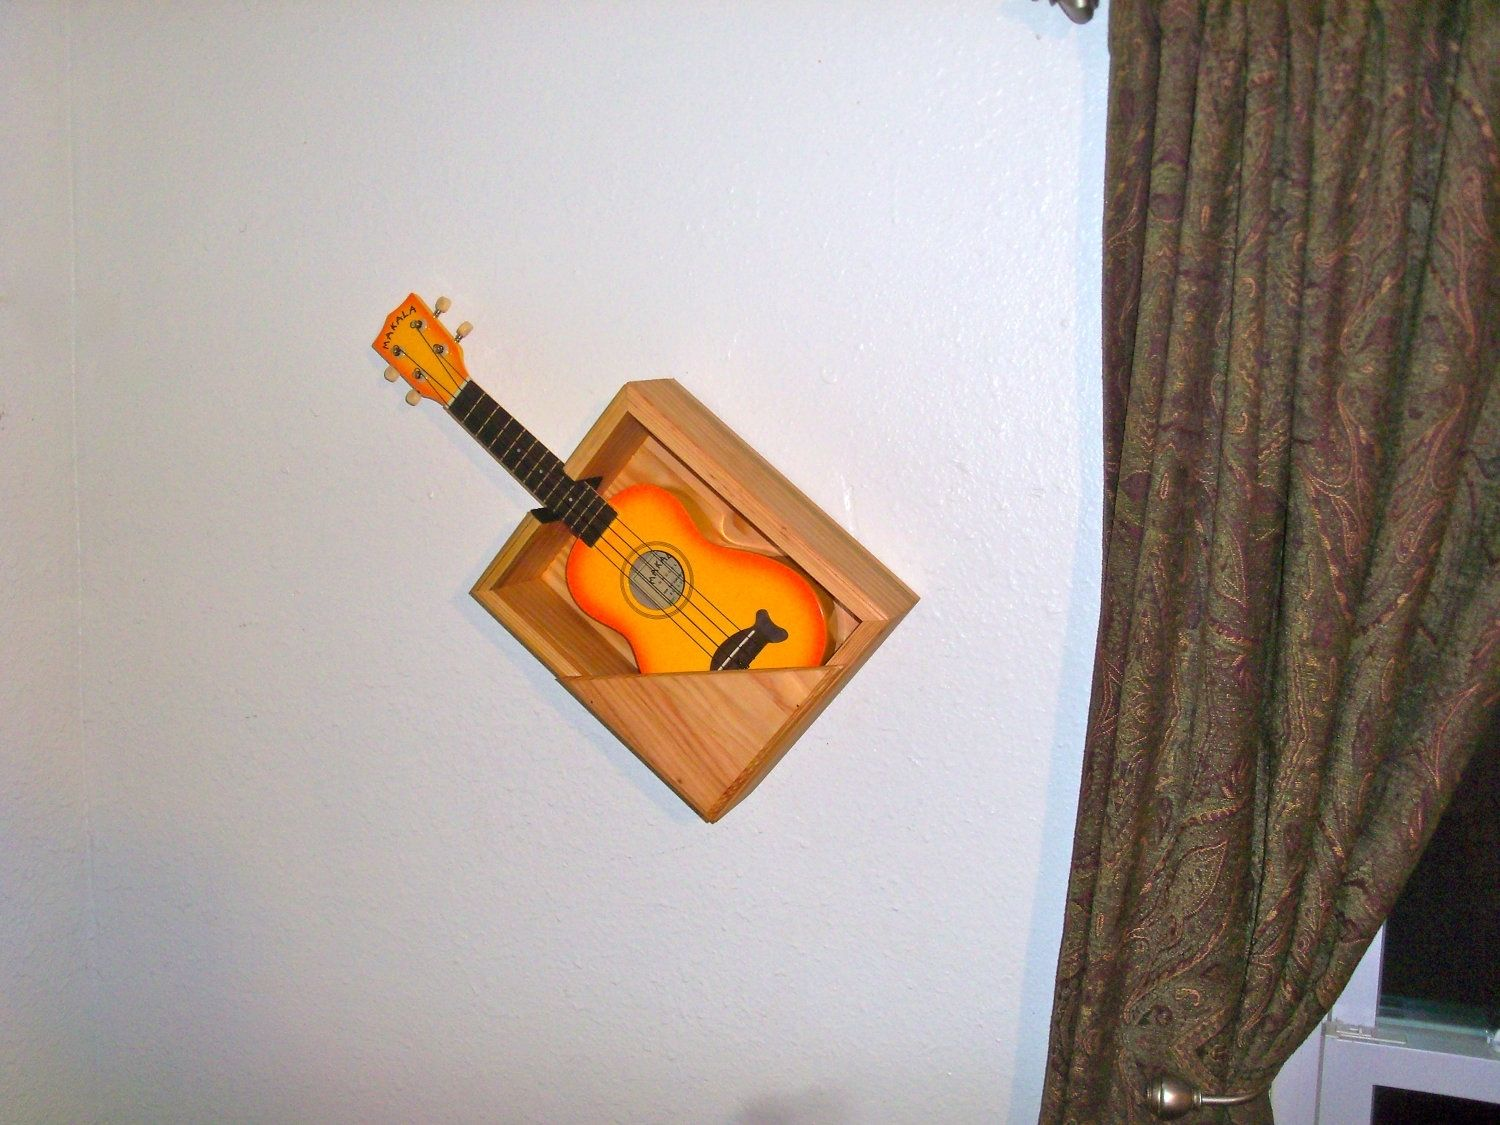 Buy a handmade wooden wall mounted shelf for guitar made to order custom made wooden wall mounted shelf for guitar amipublicfo Gallery